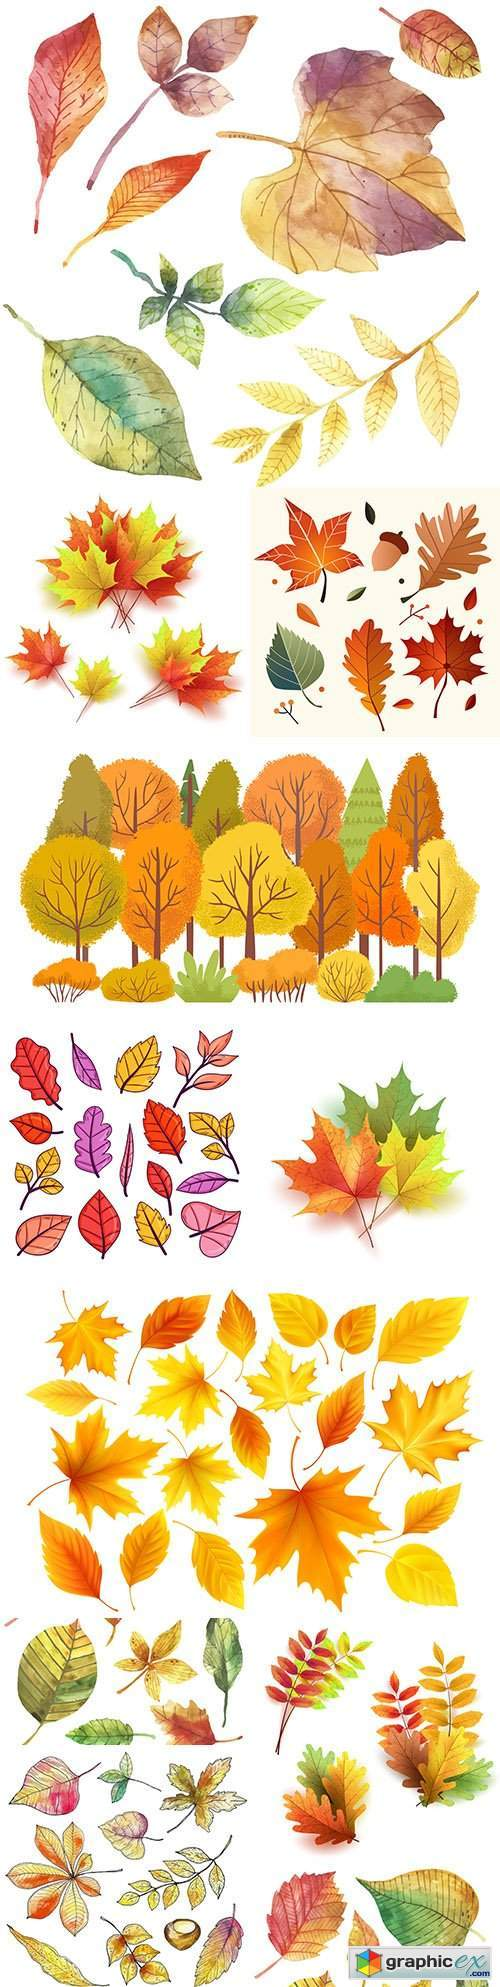 Autumn bright colorful different leaves illustration collection